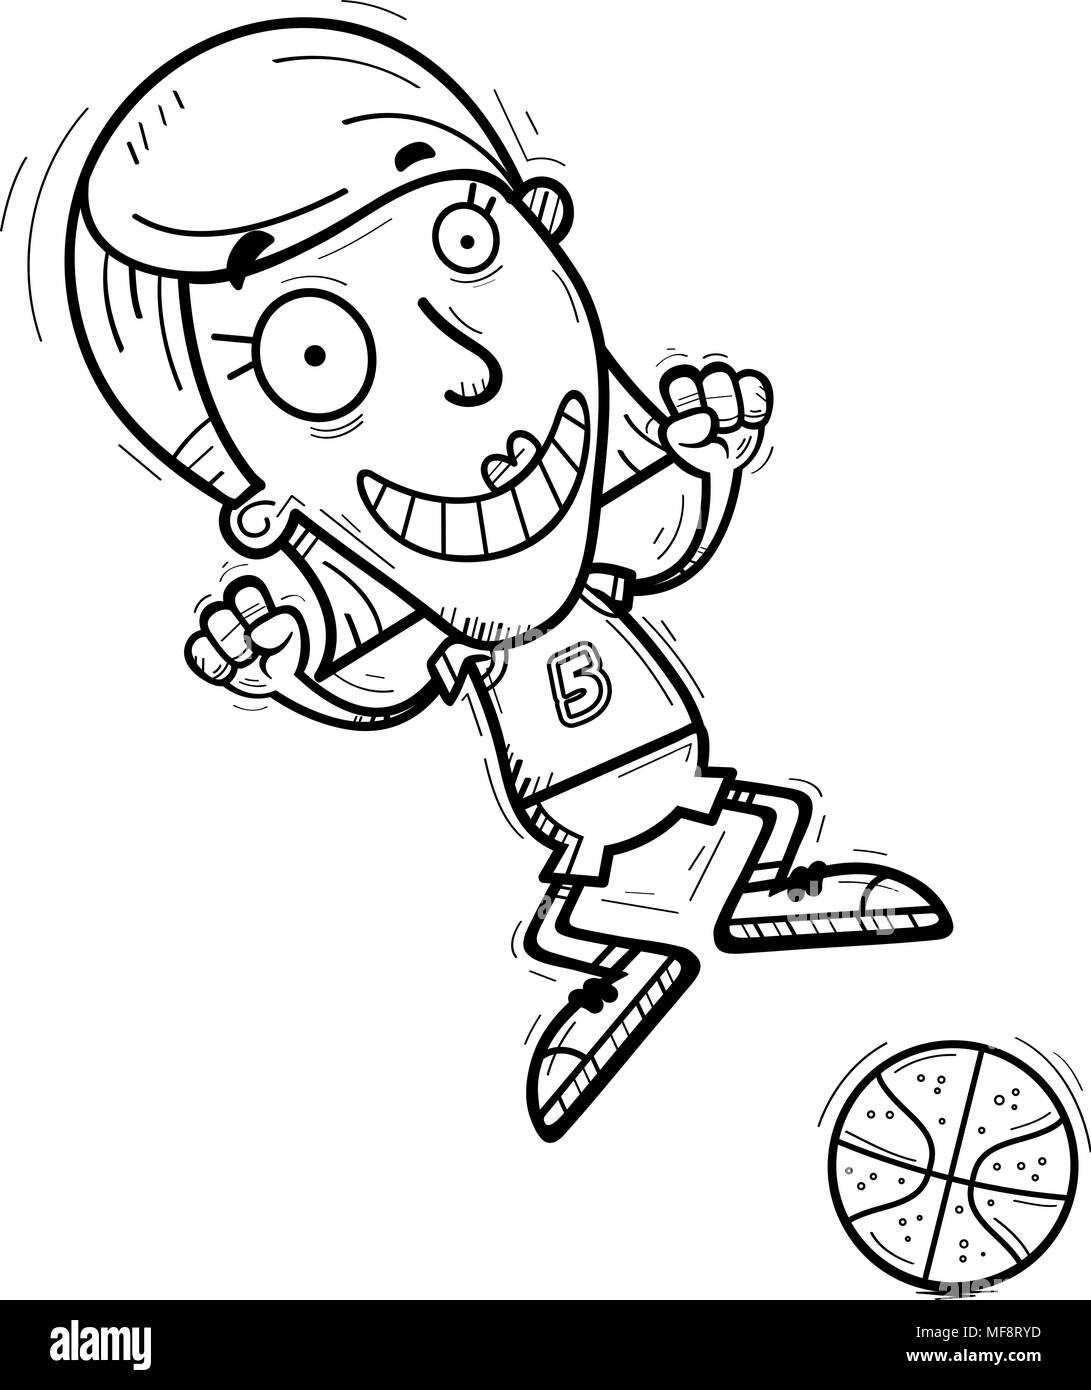 A cartoon illustration of a woman basketball player jumping. - Stock Image